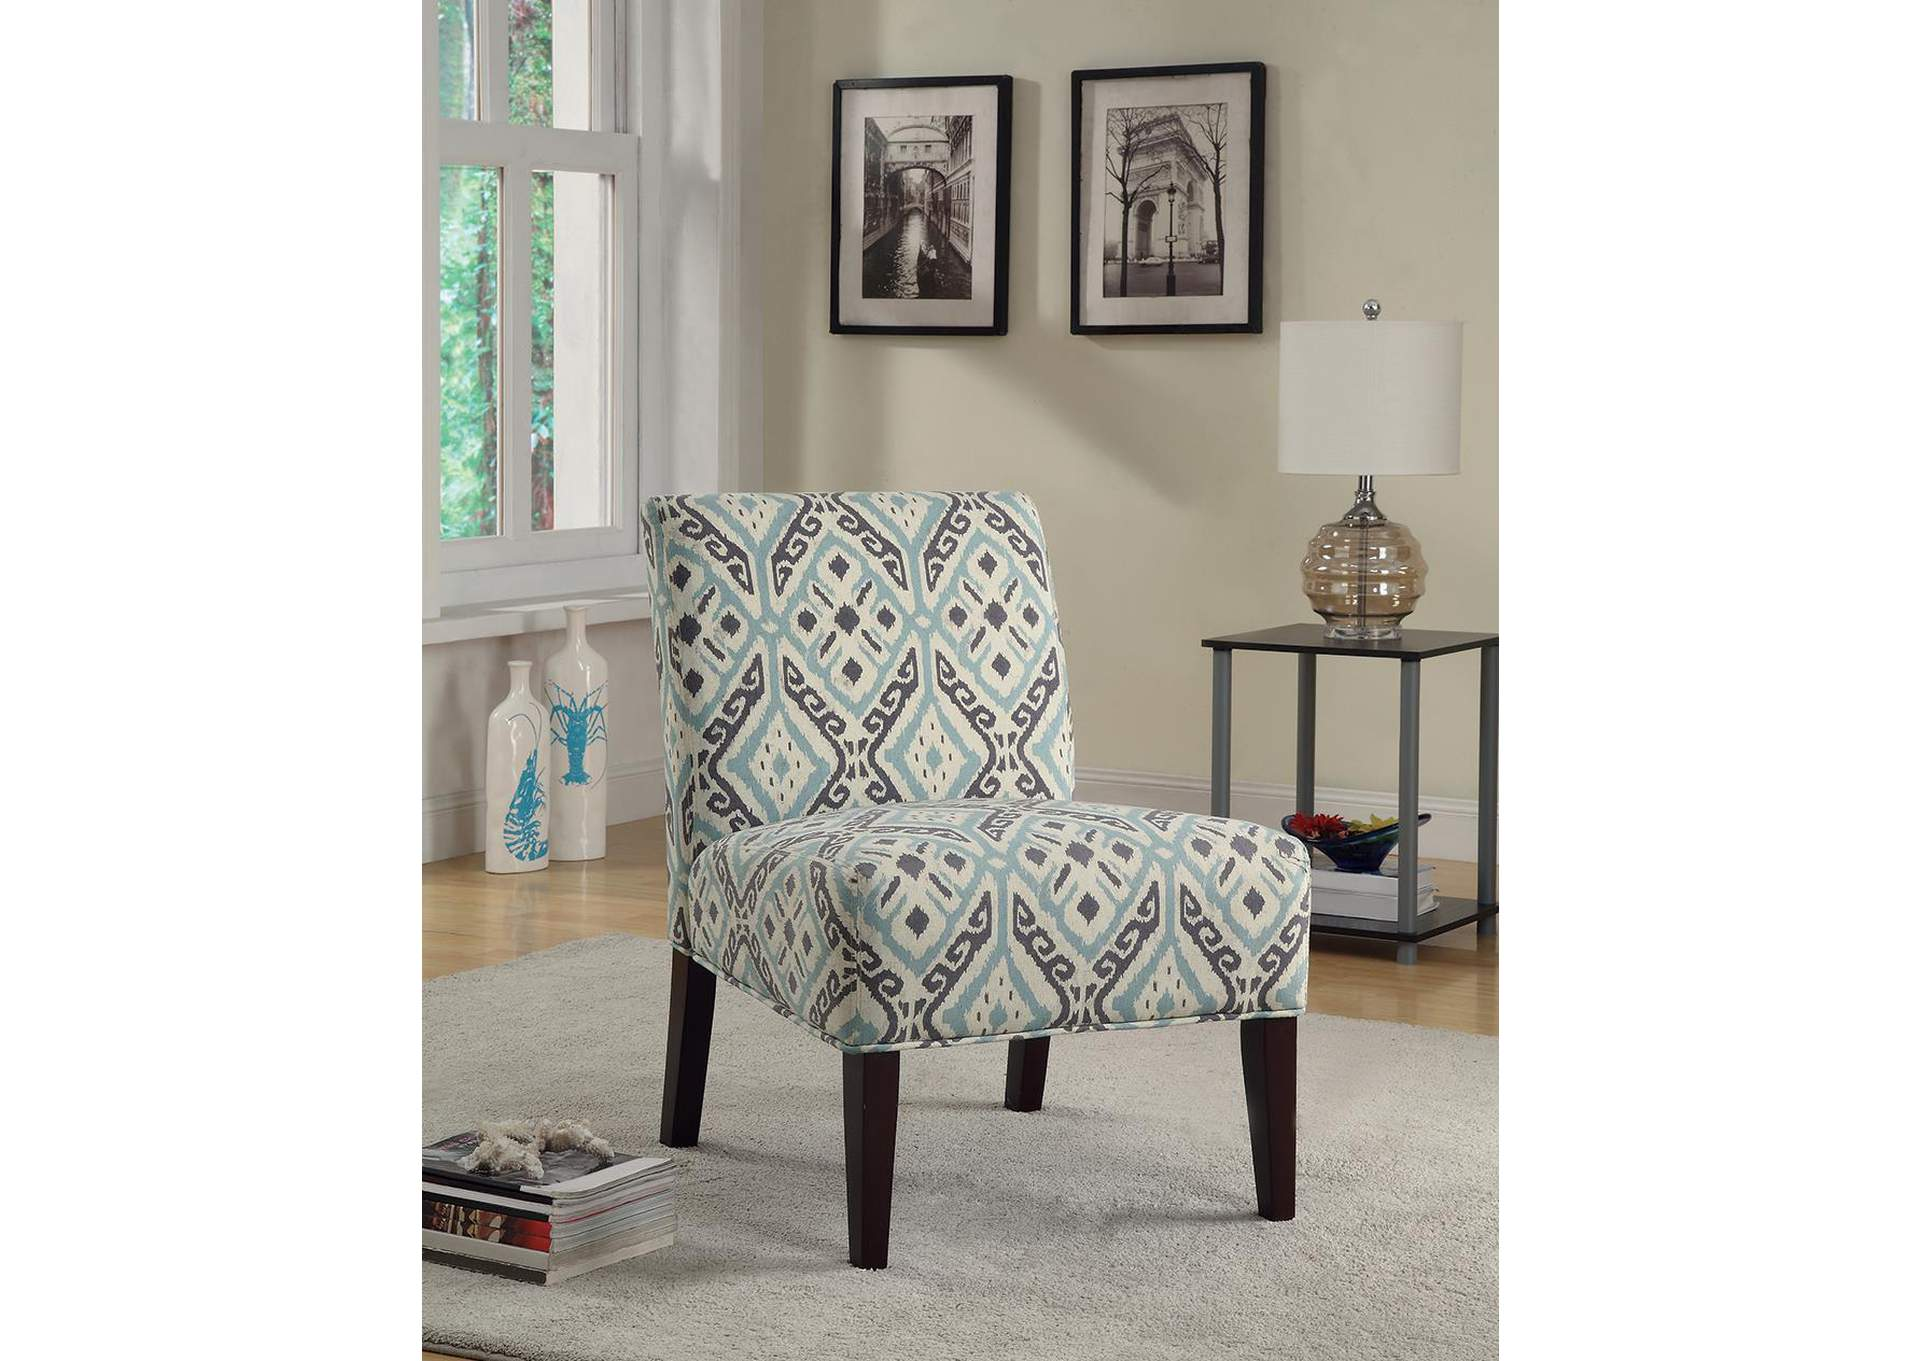 Beige/Turquoise Accent Chair,Coaster Furniture